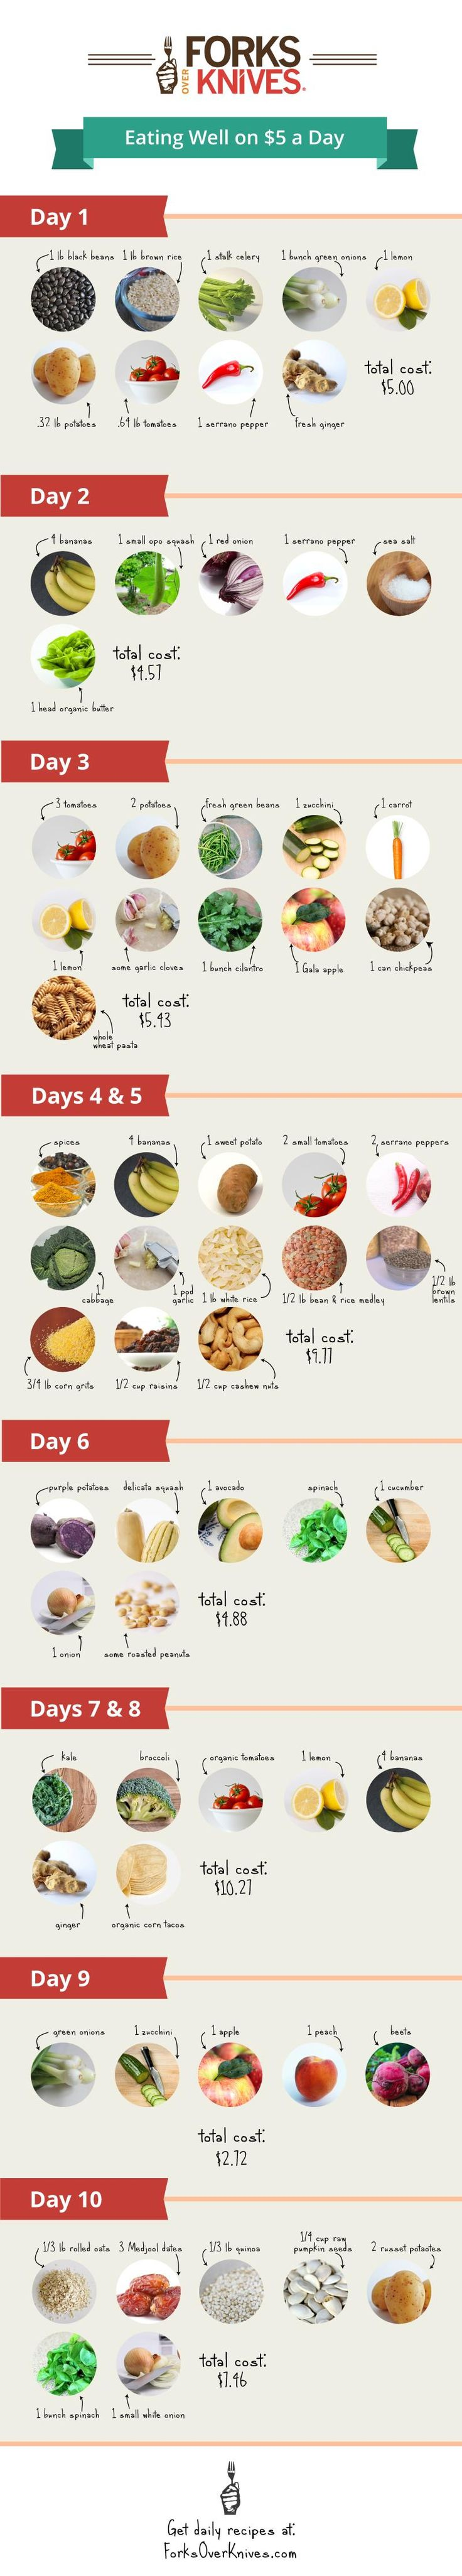 Eating Well on $5 a Day guide